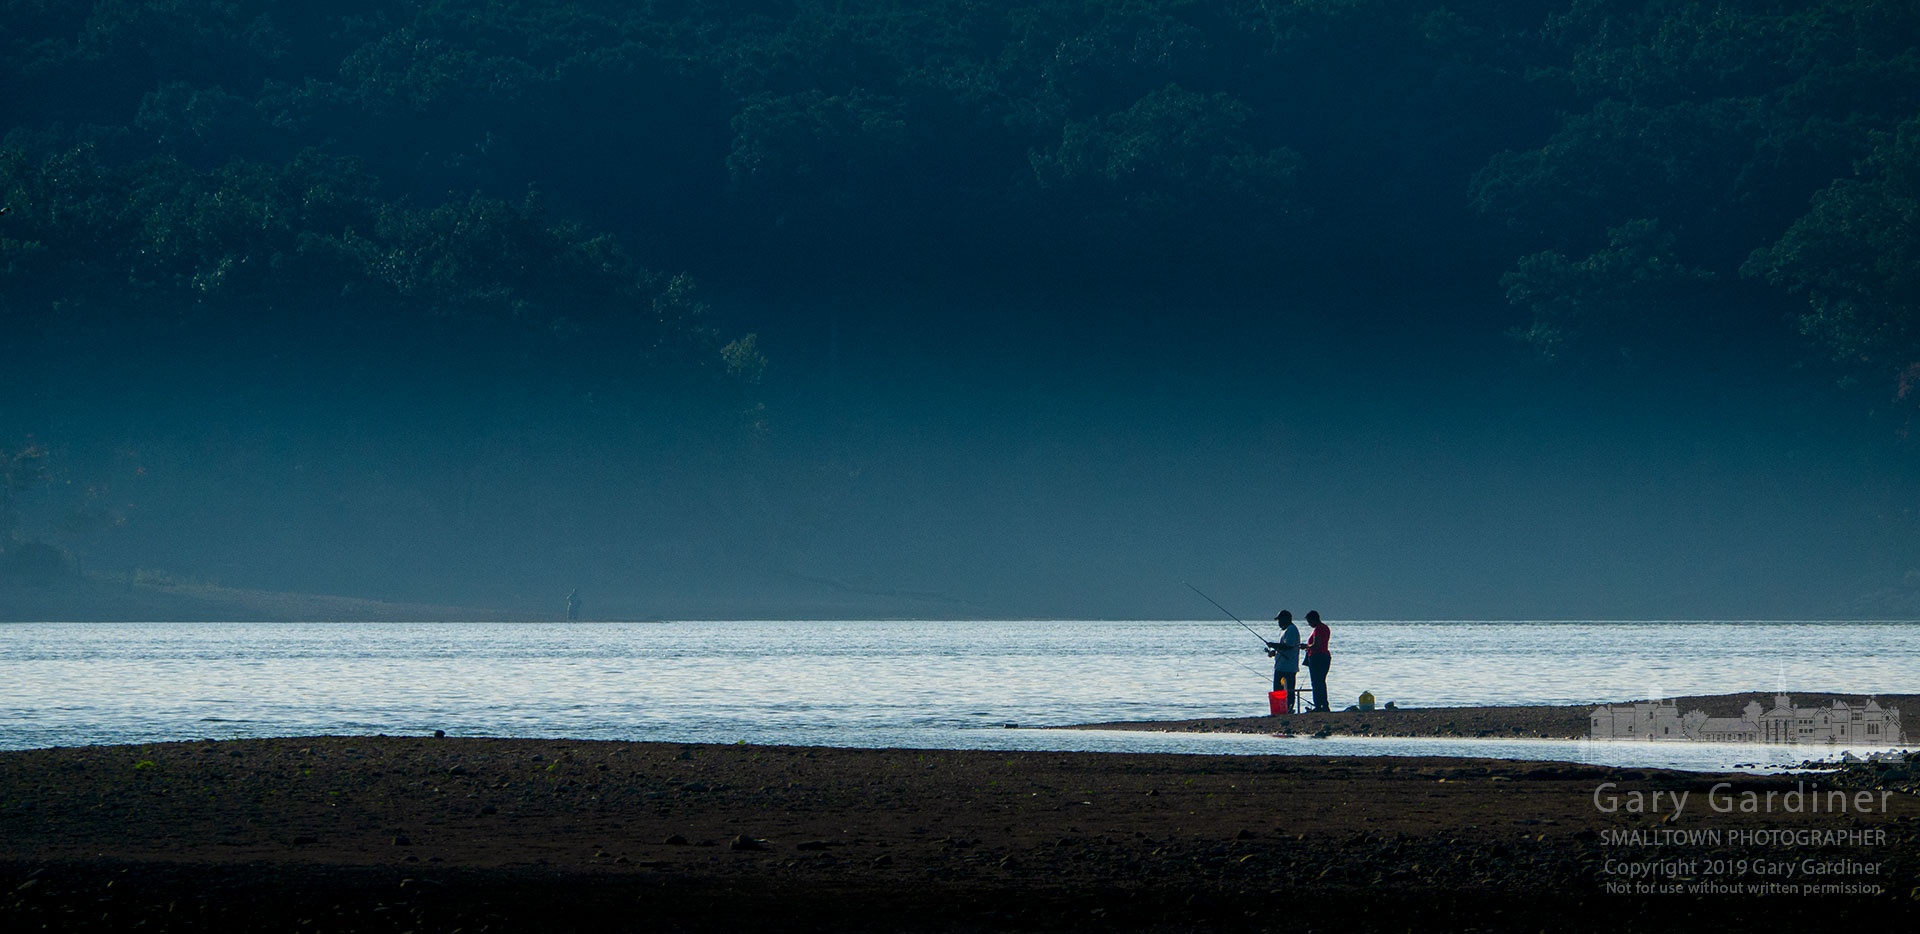 A couple sharing fishing poles stand on the end of a small spit of land at Hoover Reservoir exposed by receding water as the lake level is lowered in the fall. My Final Photo for Oct. 1, 2019.